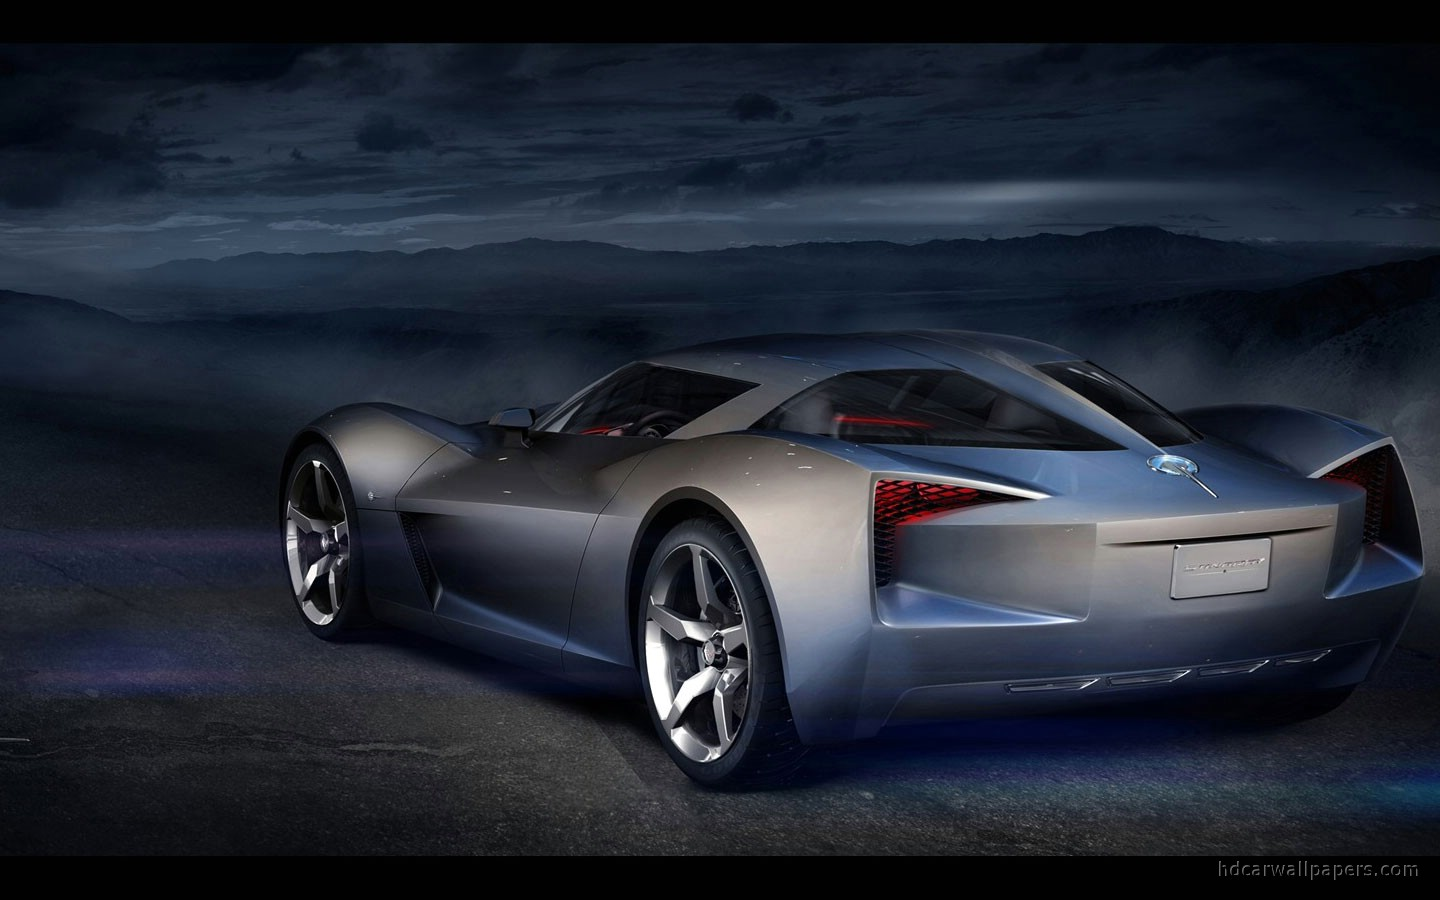 Chevrolet Corvette Stingray Concept 3 Wallpaper  HD Car Wallpapers